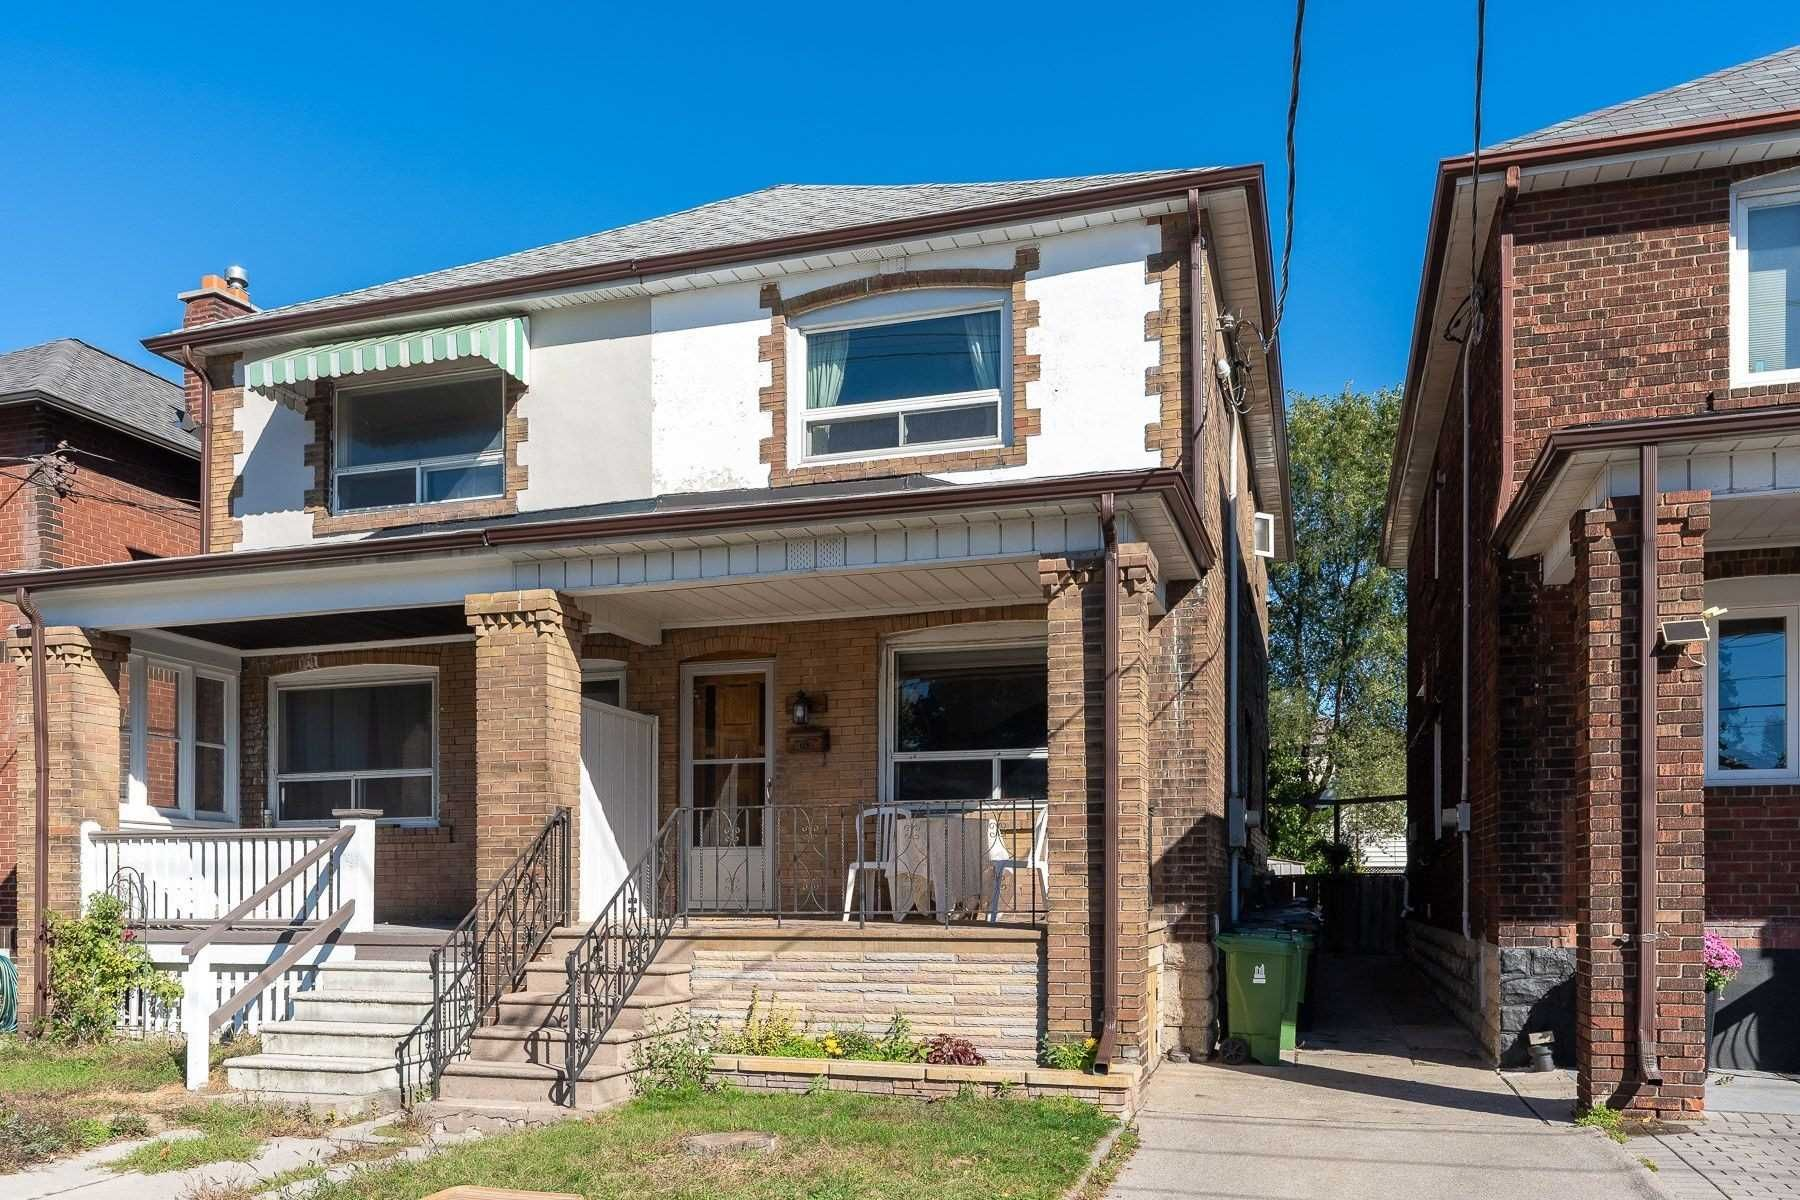 Main Photo: 467 Jane Street in Toronto: Runnymede-Bloor West Village House (2-Storey) for sale (Toronto W02)  : MLS®# W4952845